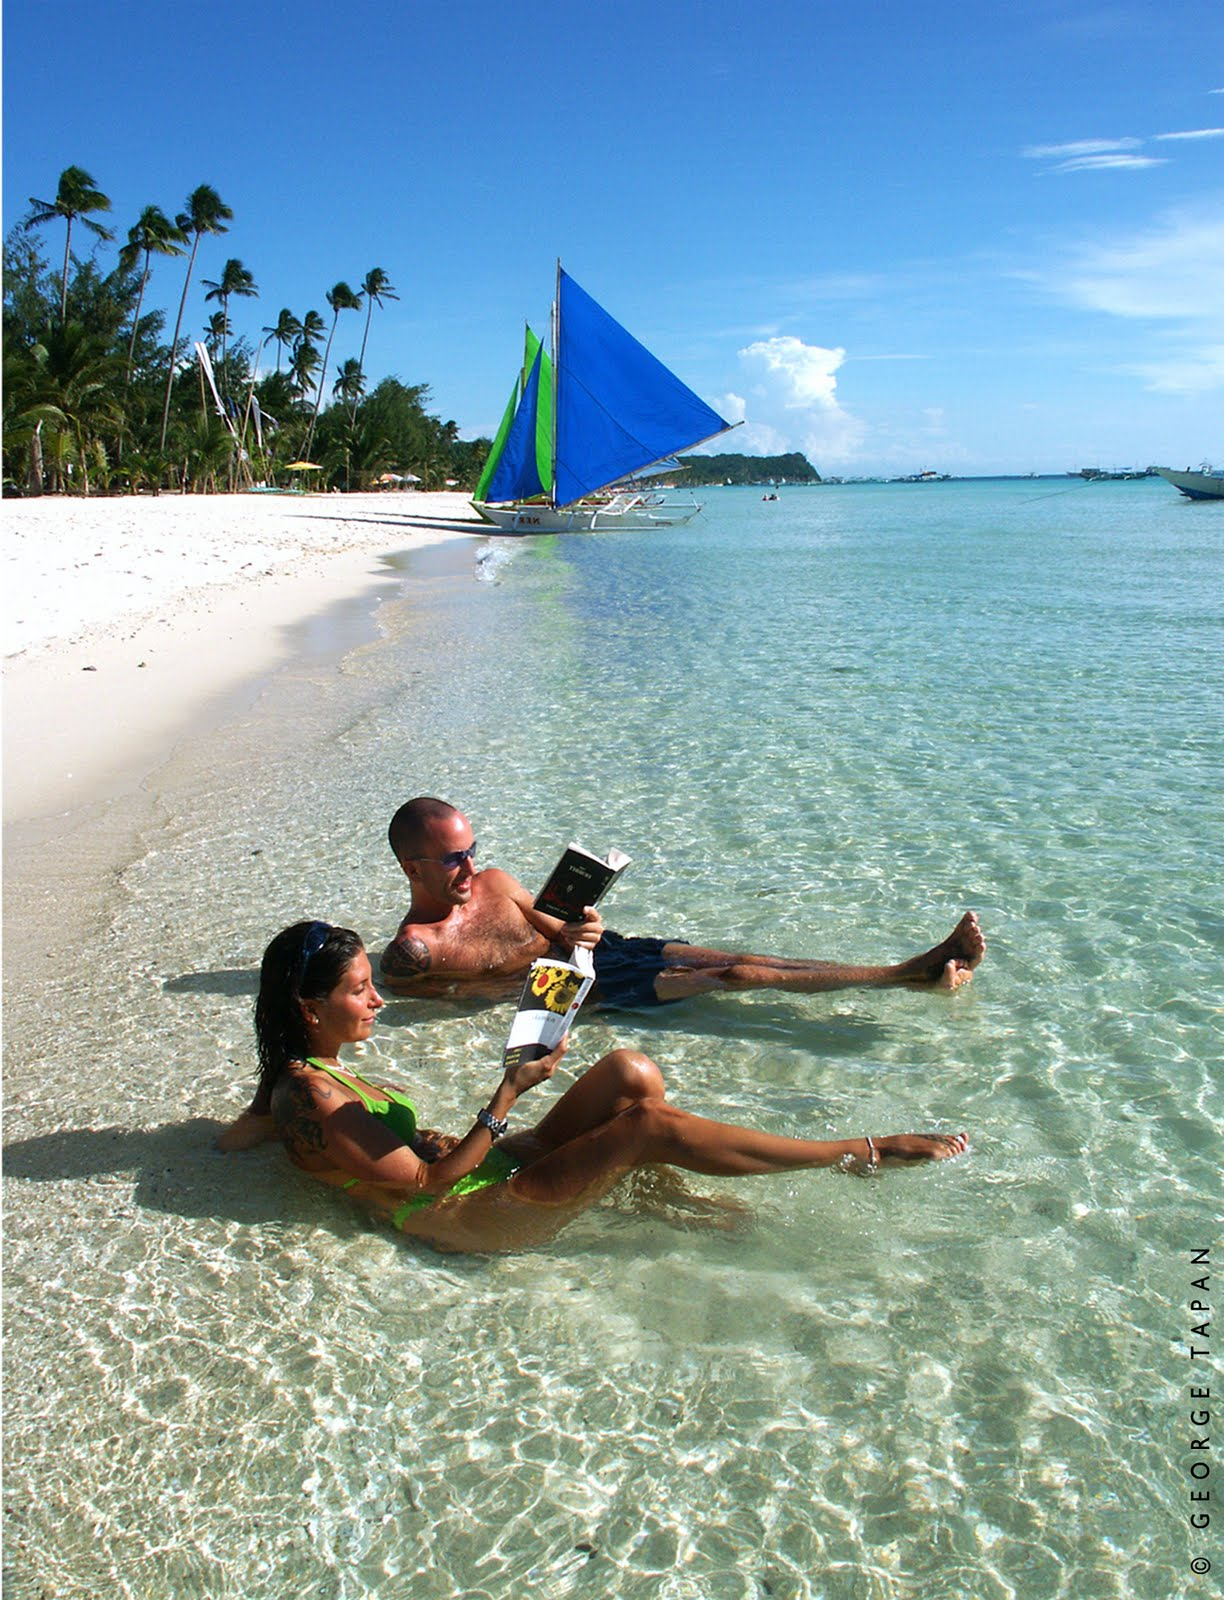 All About Asia 39 S Travel Blog Honeymoon On Boracay Island Philippines Simply Paradise